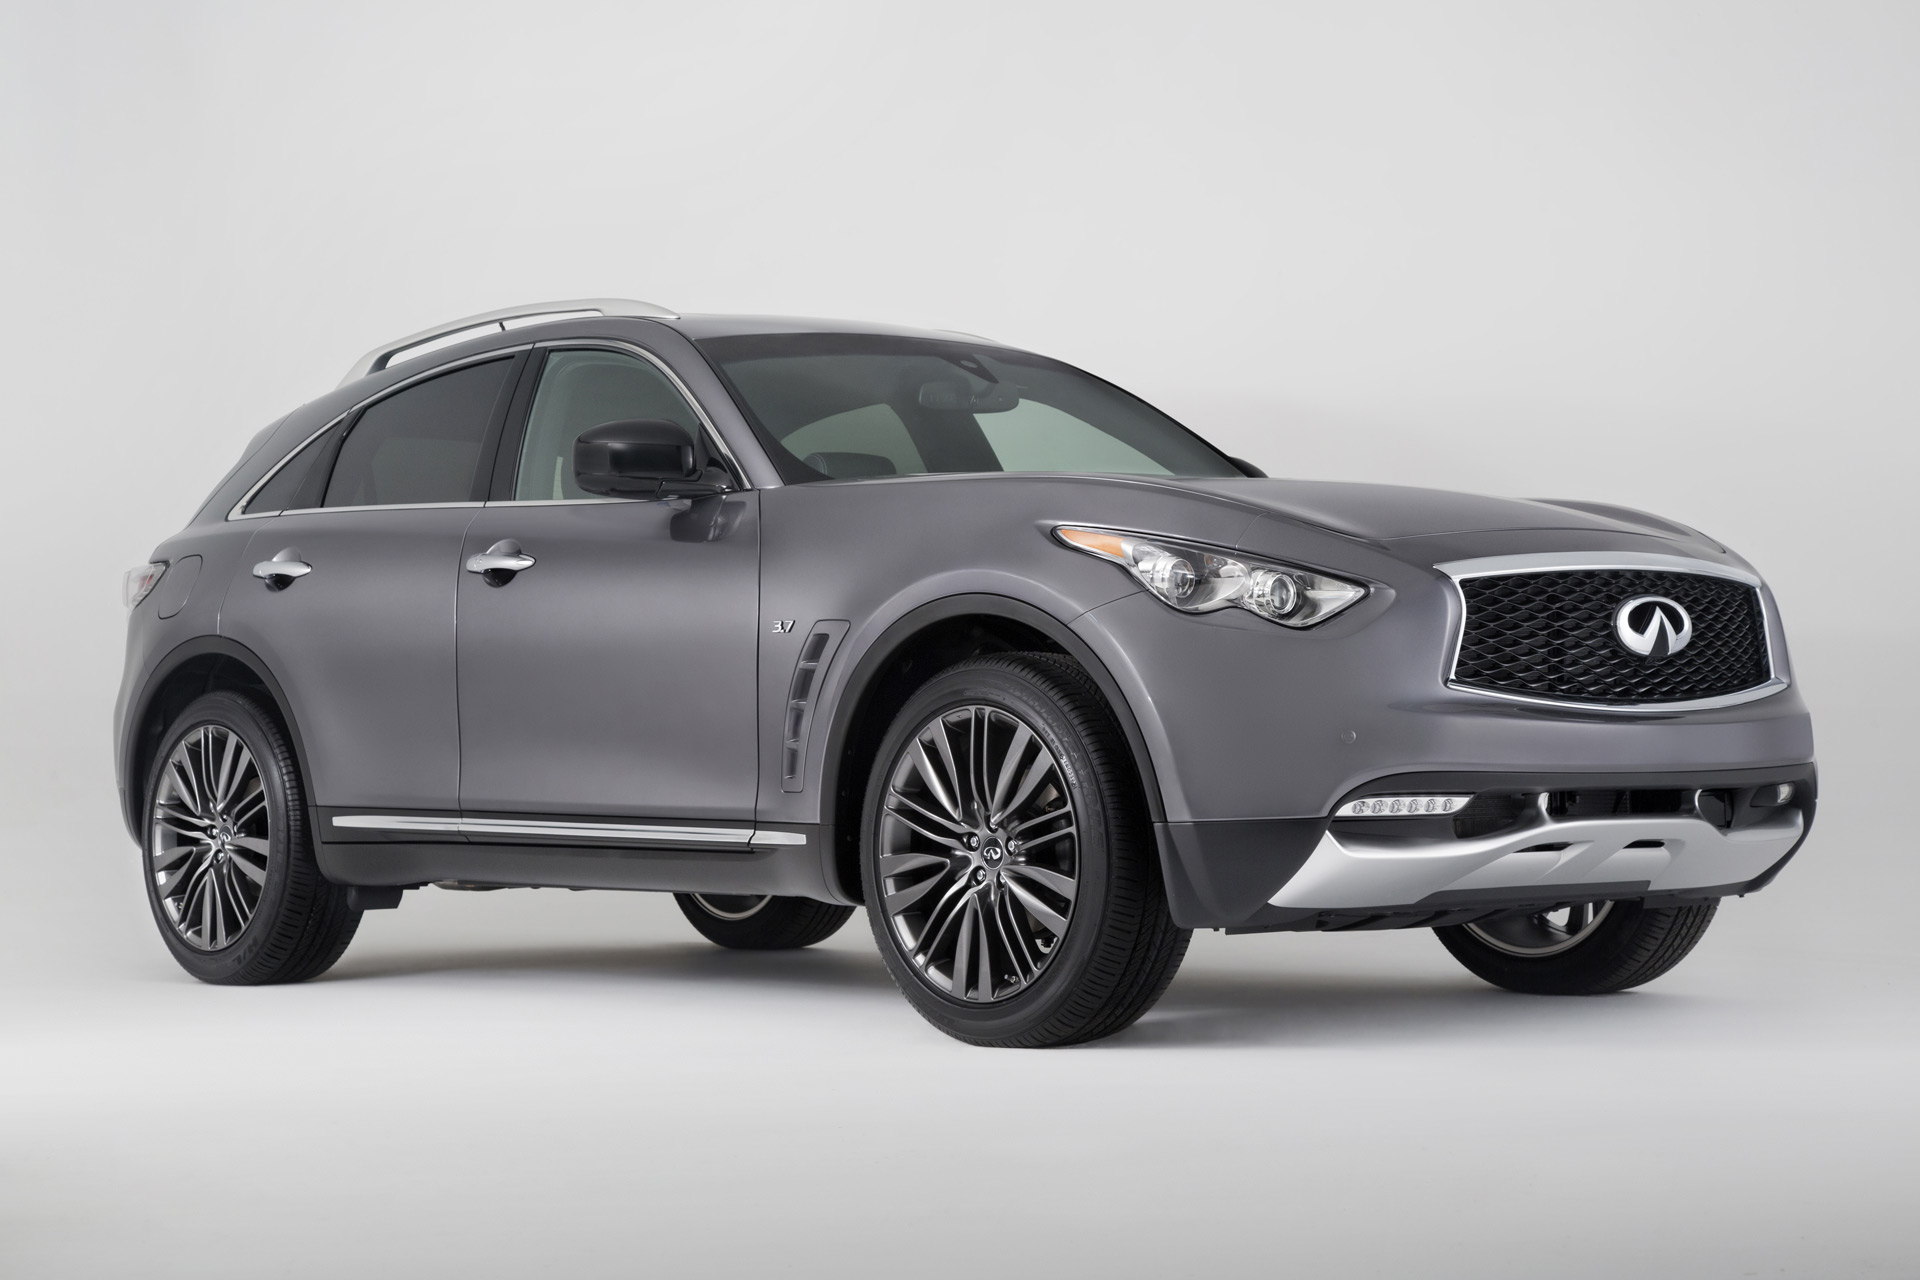 compression production comes cheese new news variable to photos engine infinity live into crossover with camera a is says concept infiniti focus car first the naias